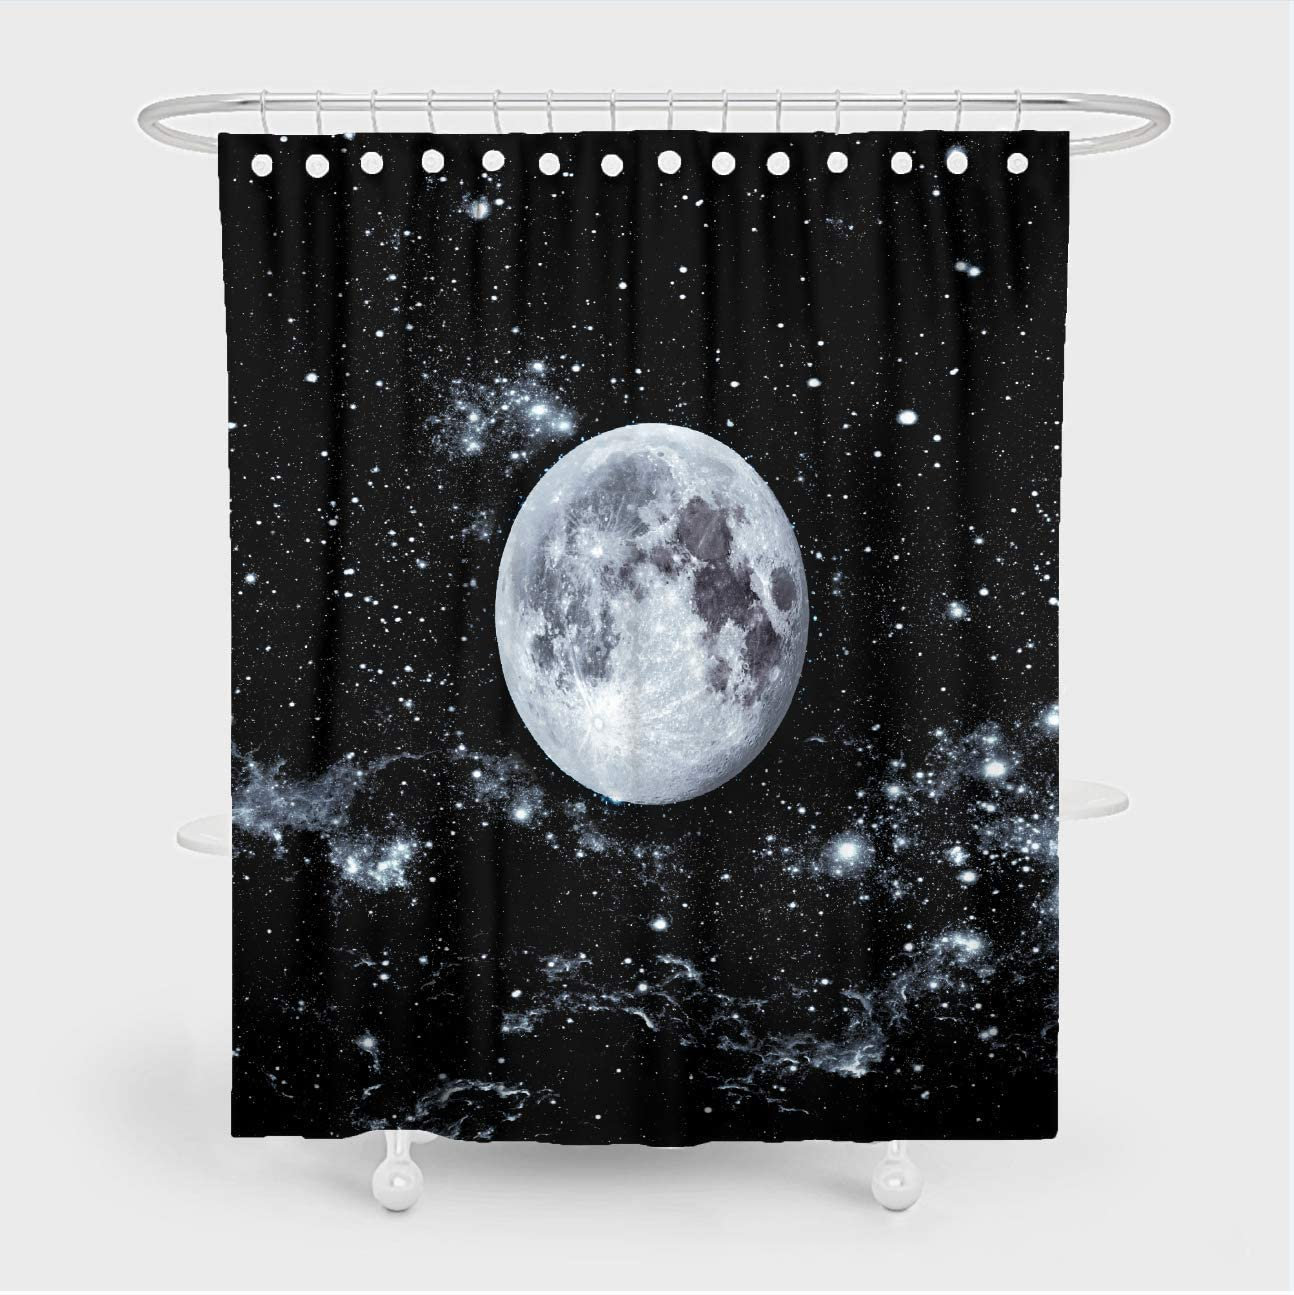 Sevenstars Marble/Texture/Shower/Curtains/Durable/Waterproof/Bath/Curtain/with/12/Hooks